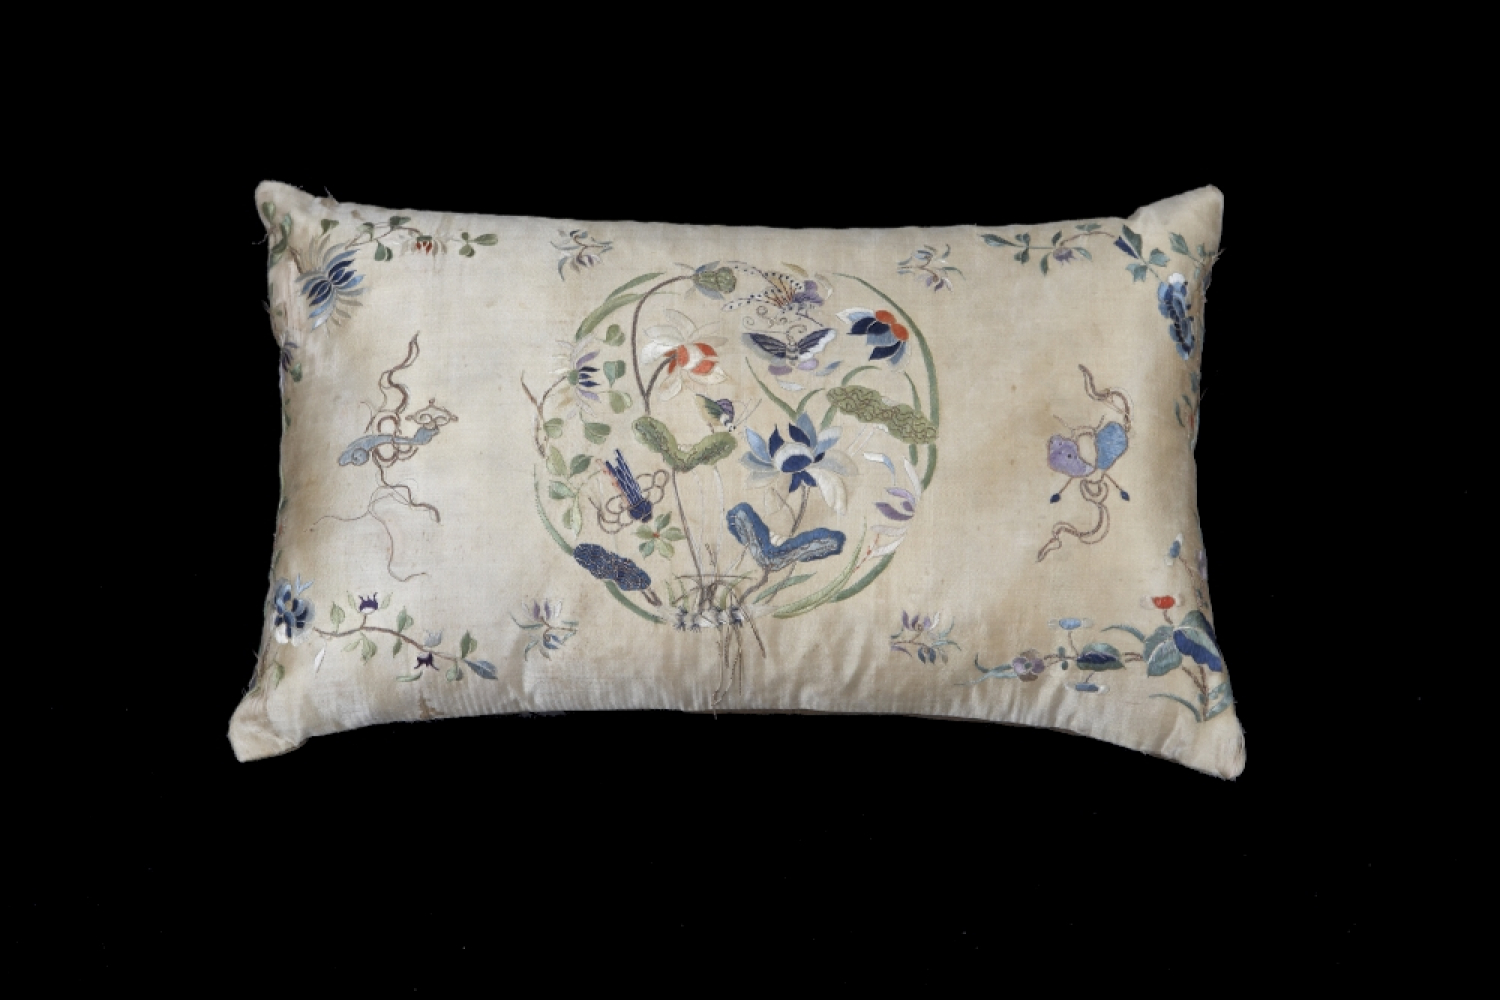 A 19th century Japanese embroidered cushion